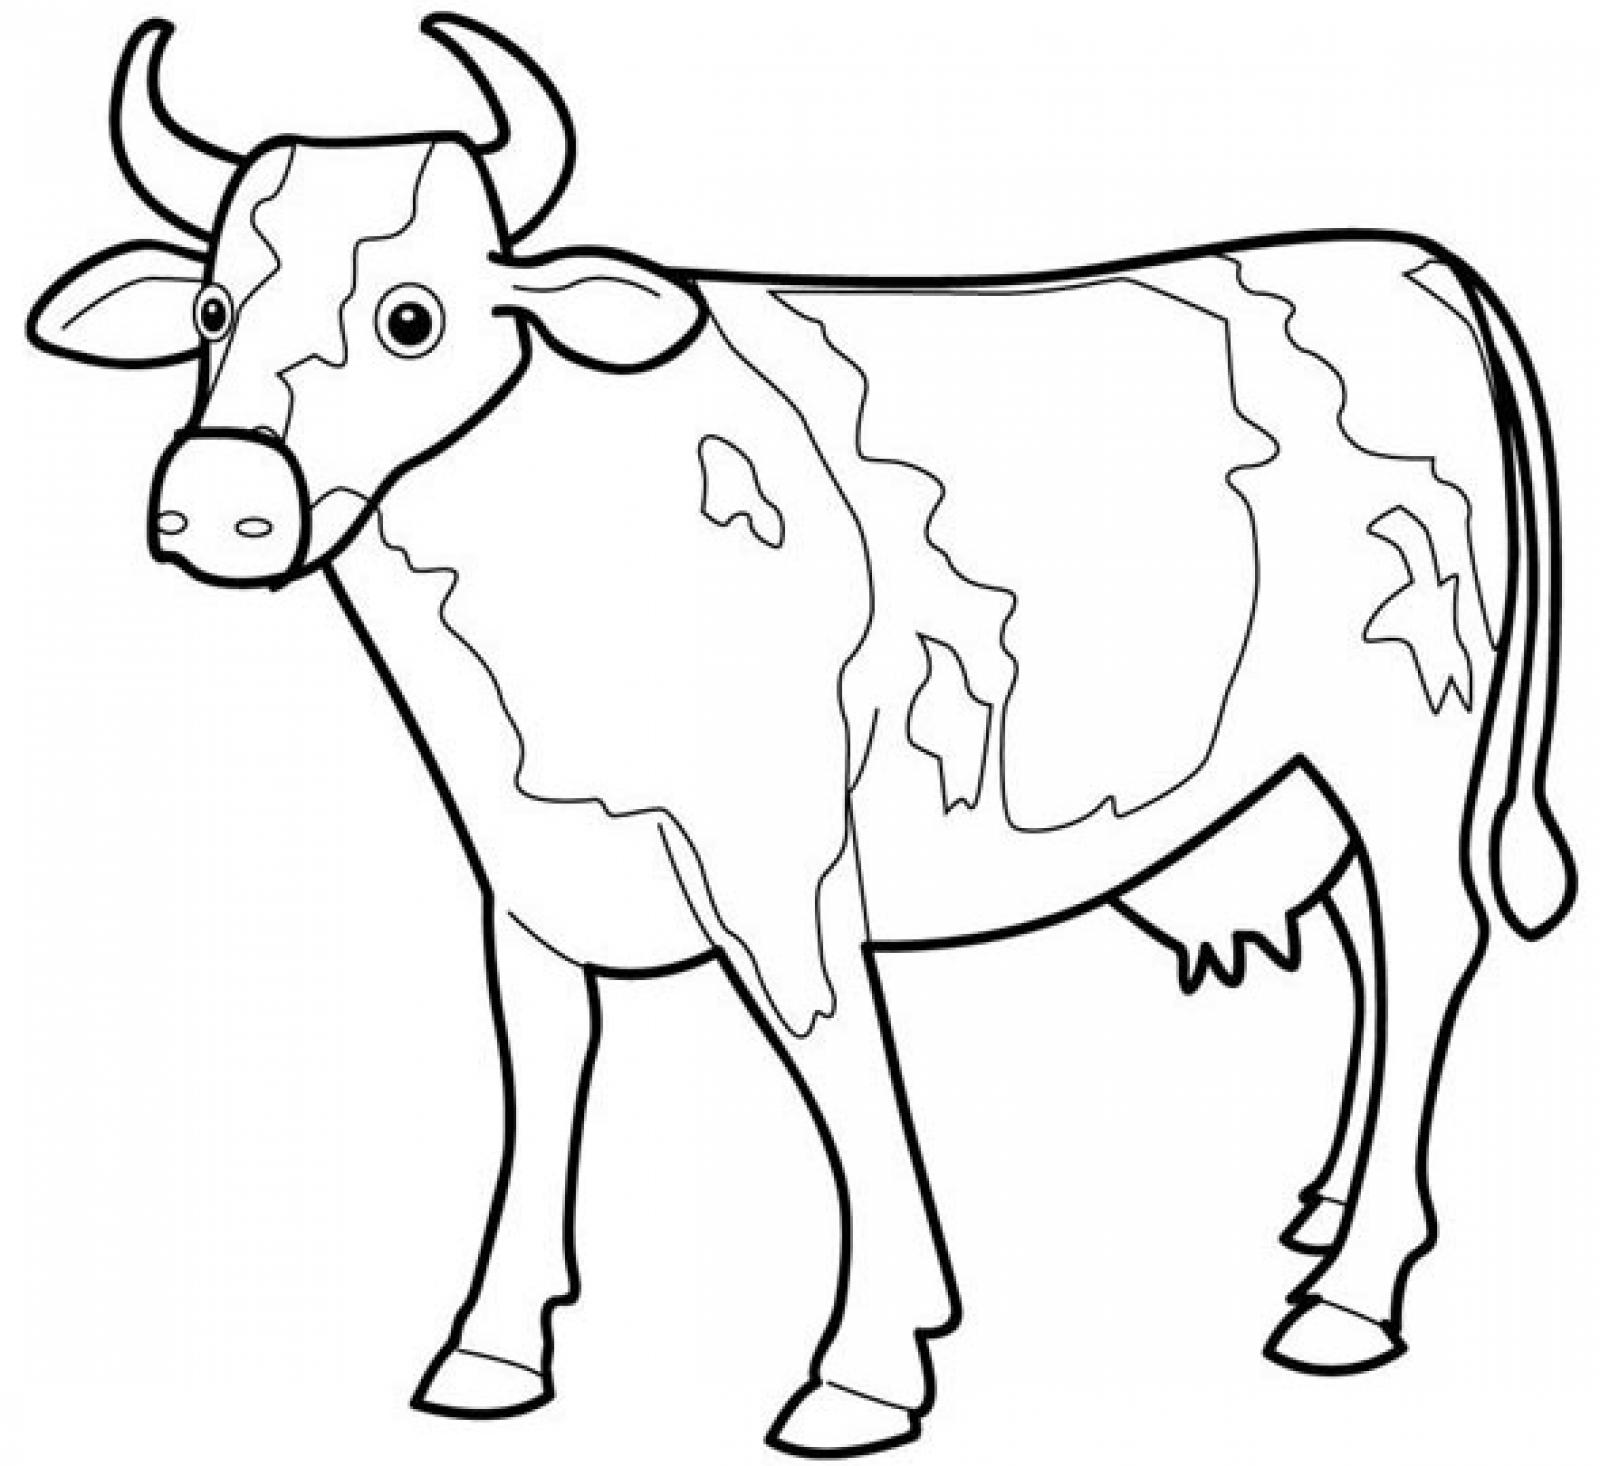 Cow coloring #13, Download drawings